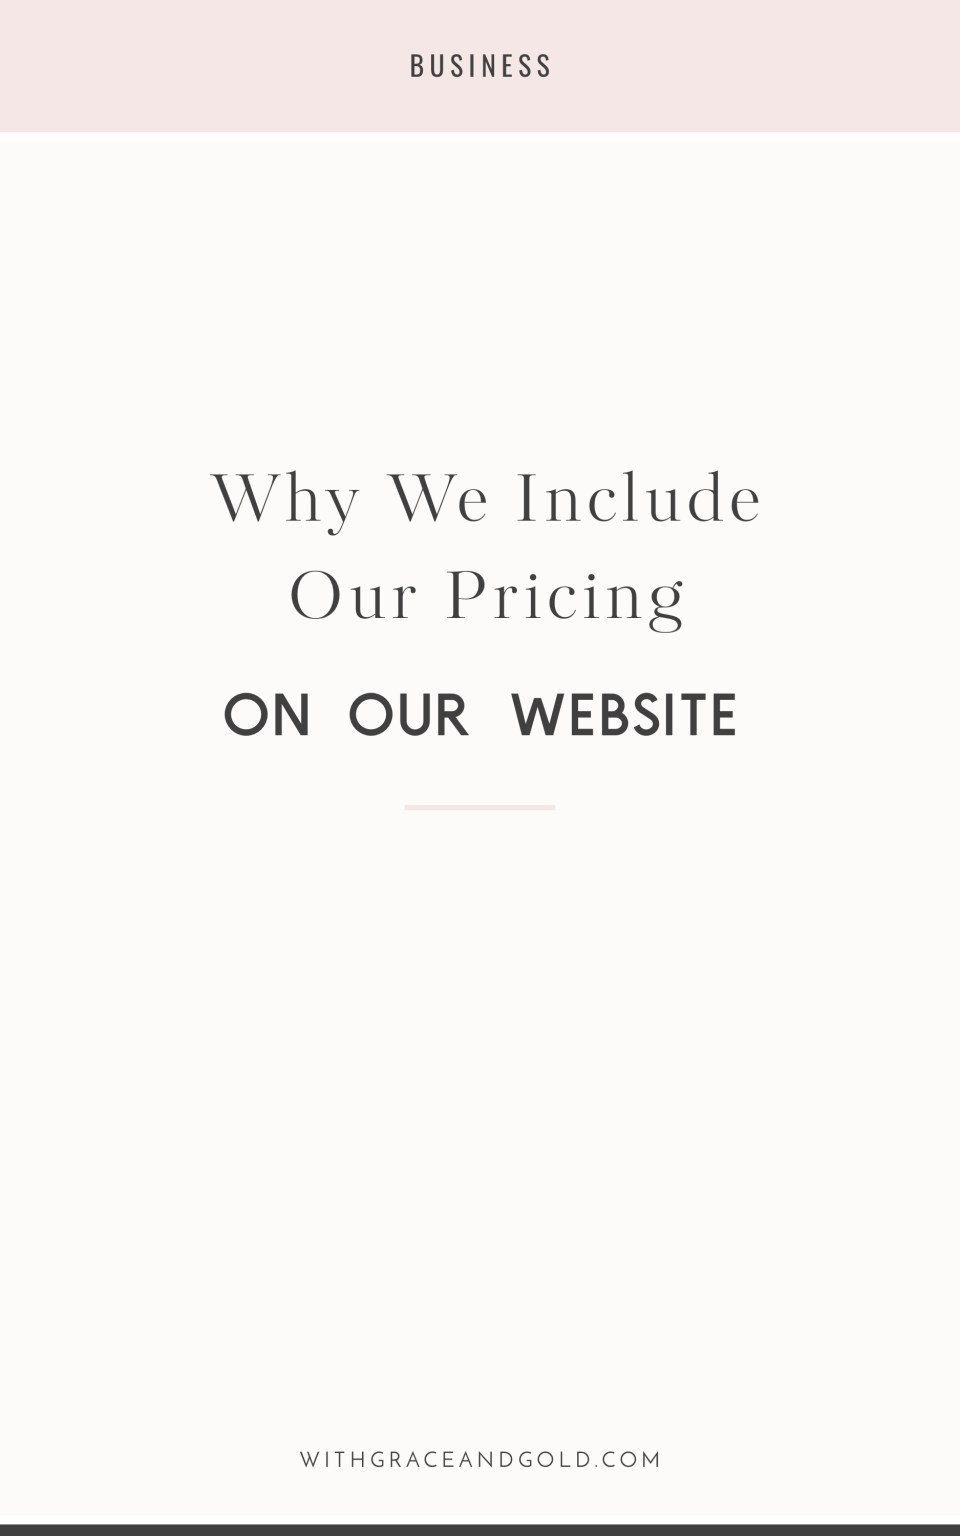 Why We Include Our Pricing on Our Website